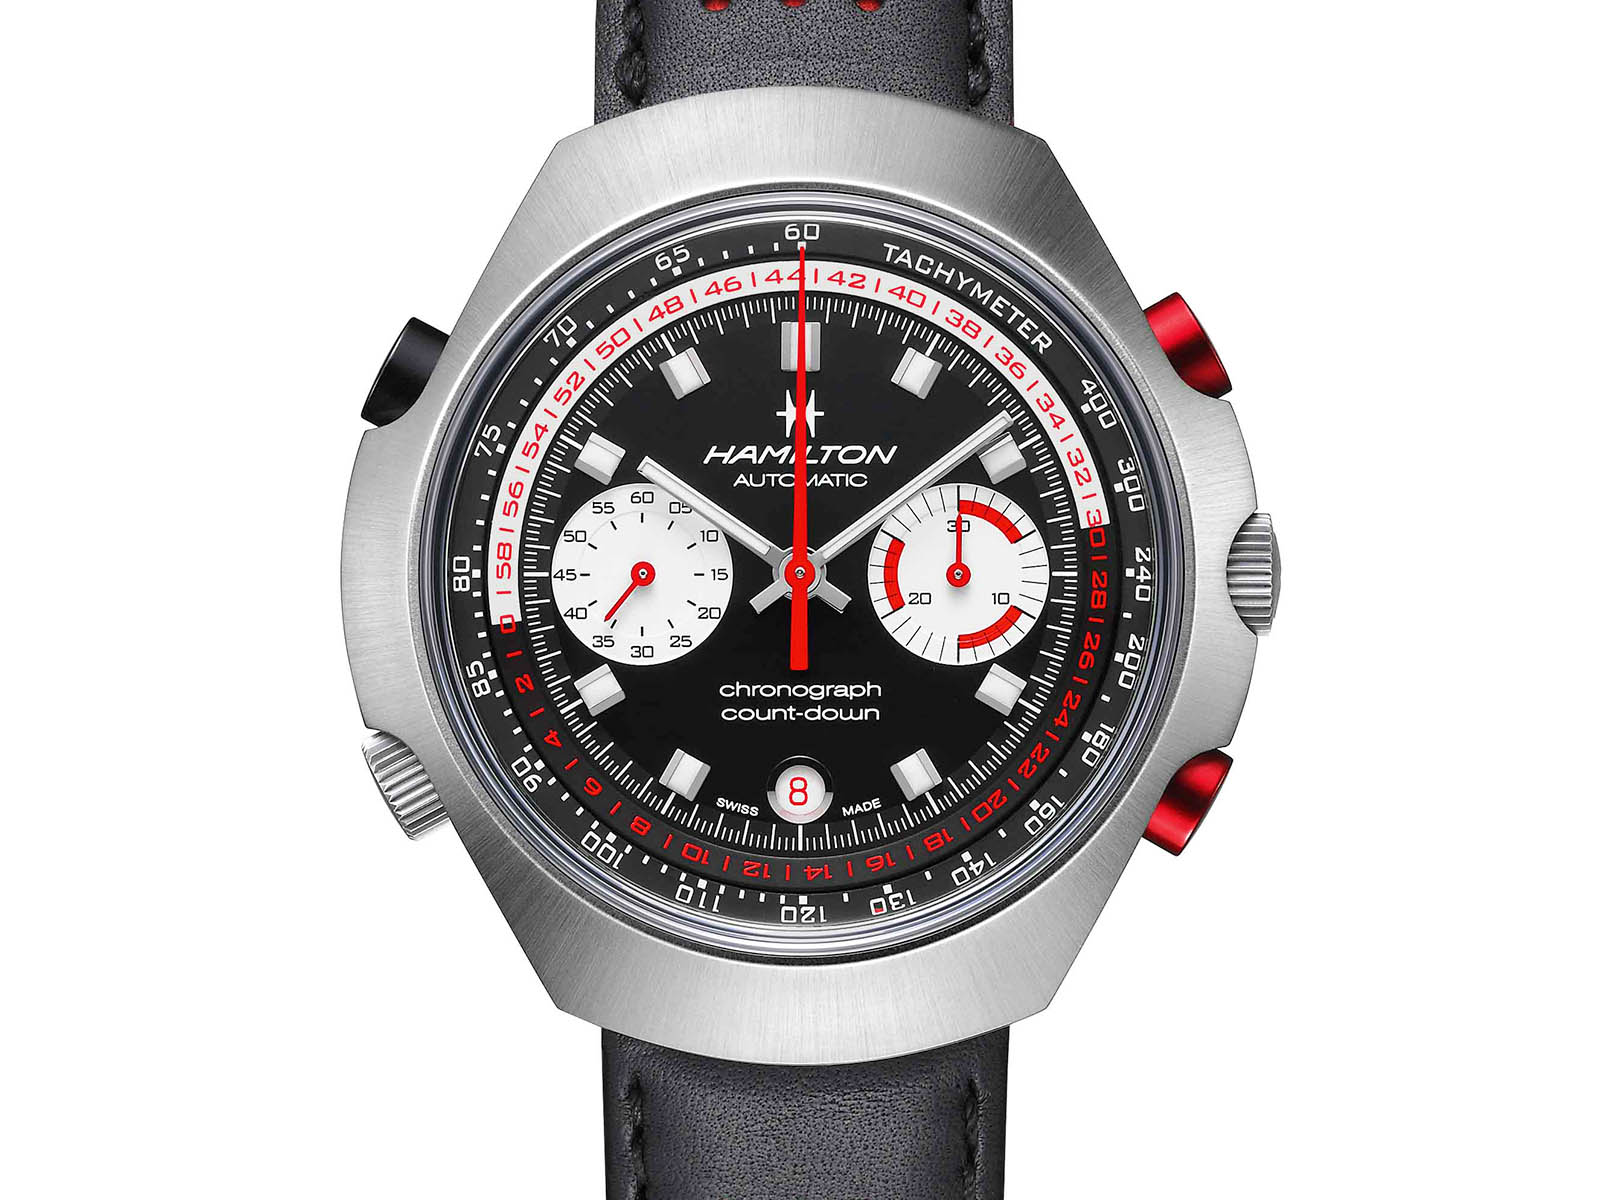 h51616731-hamilton-chrono-matic-50-auto-chrono-limited-edition-8.jpg